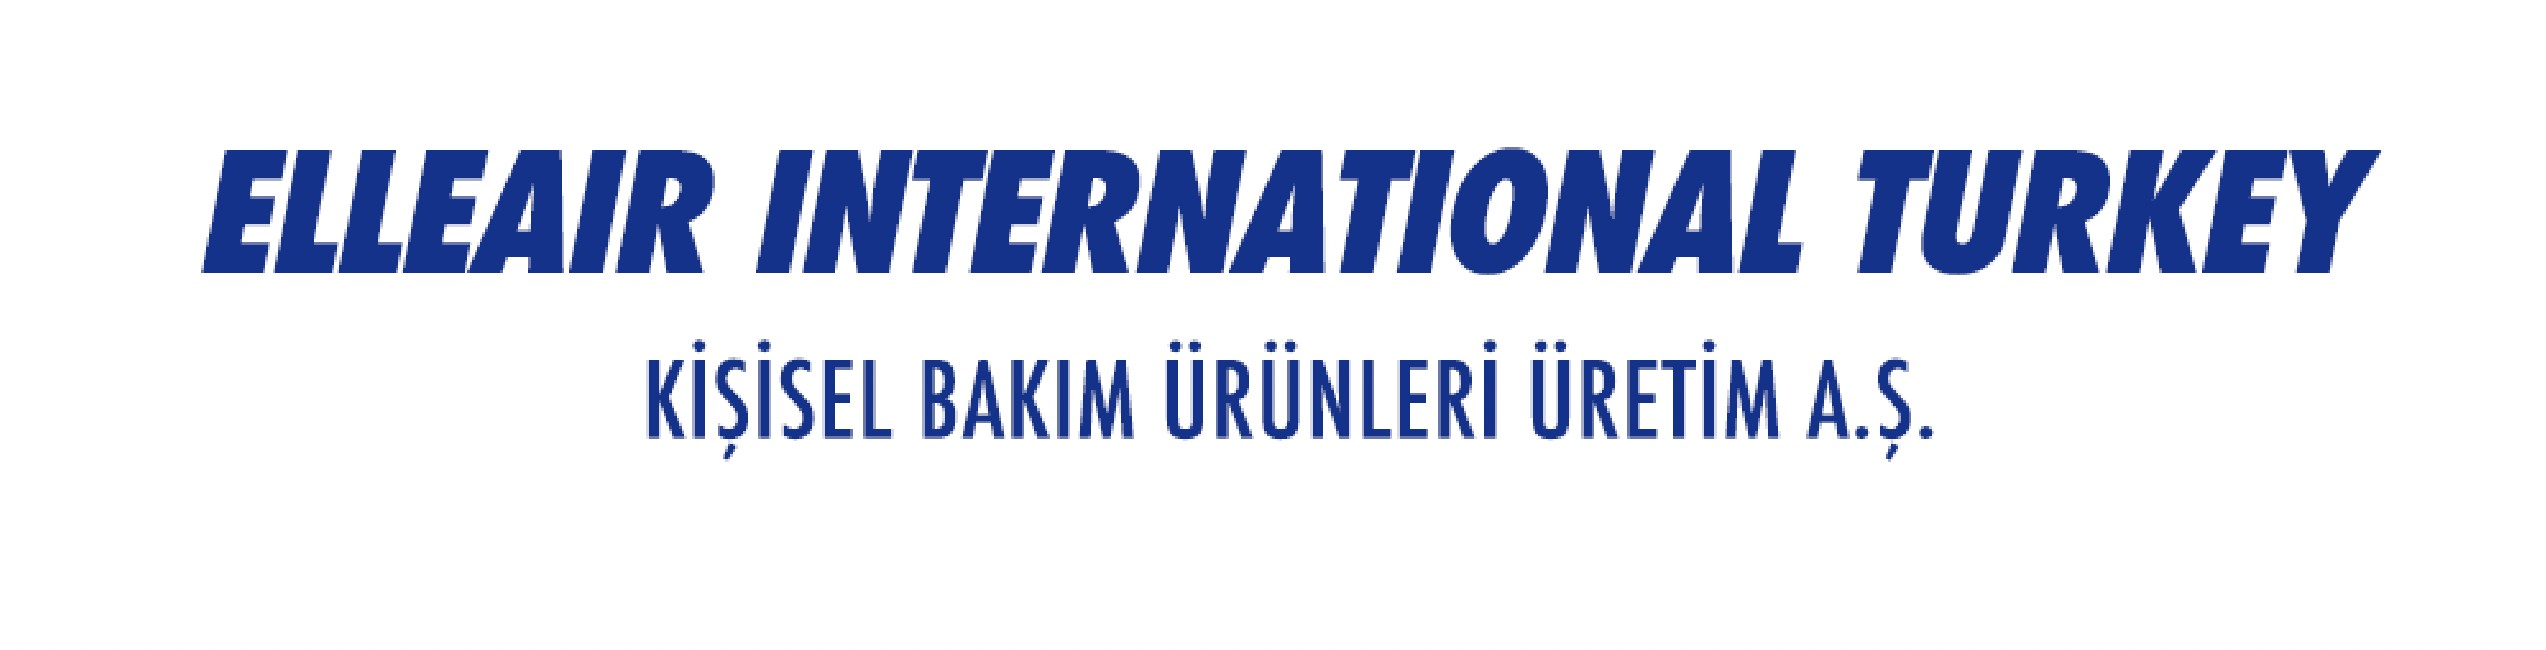 ELLEAIR INTERNATIONAL TURKEY KISISEL BAKIM URUNLERI URETIM A.S.